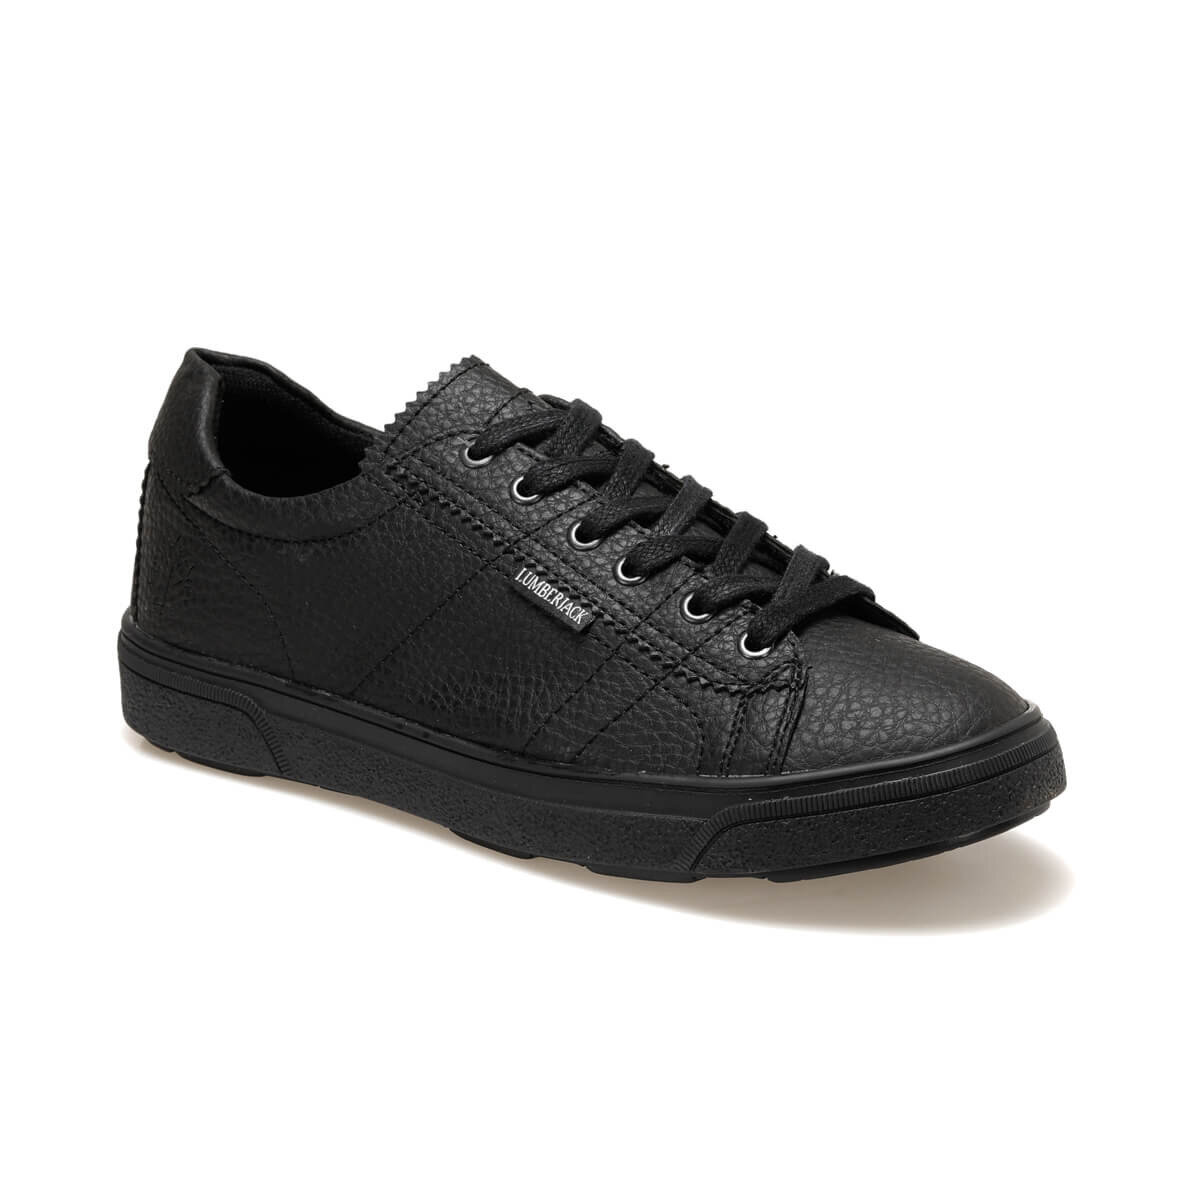 FLO BUSIA 9PR Black Men 'S Sneaker Shoes LUMBERJACK